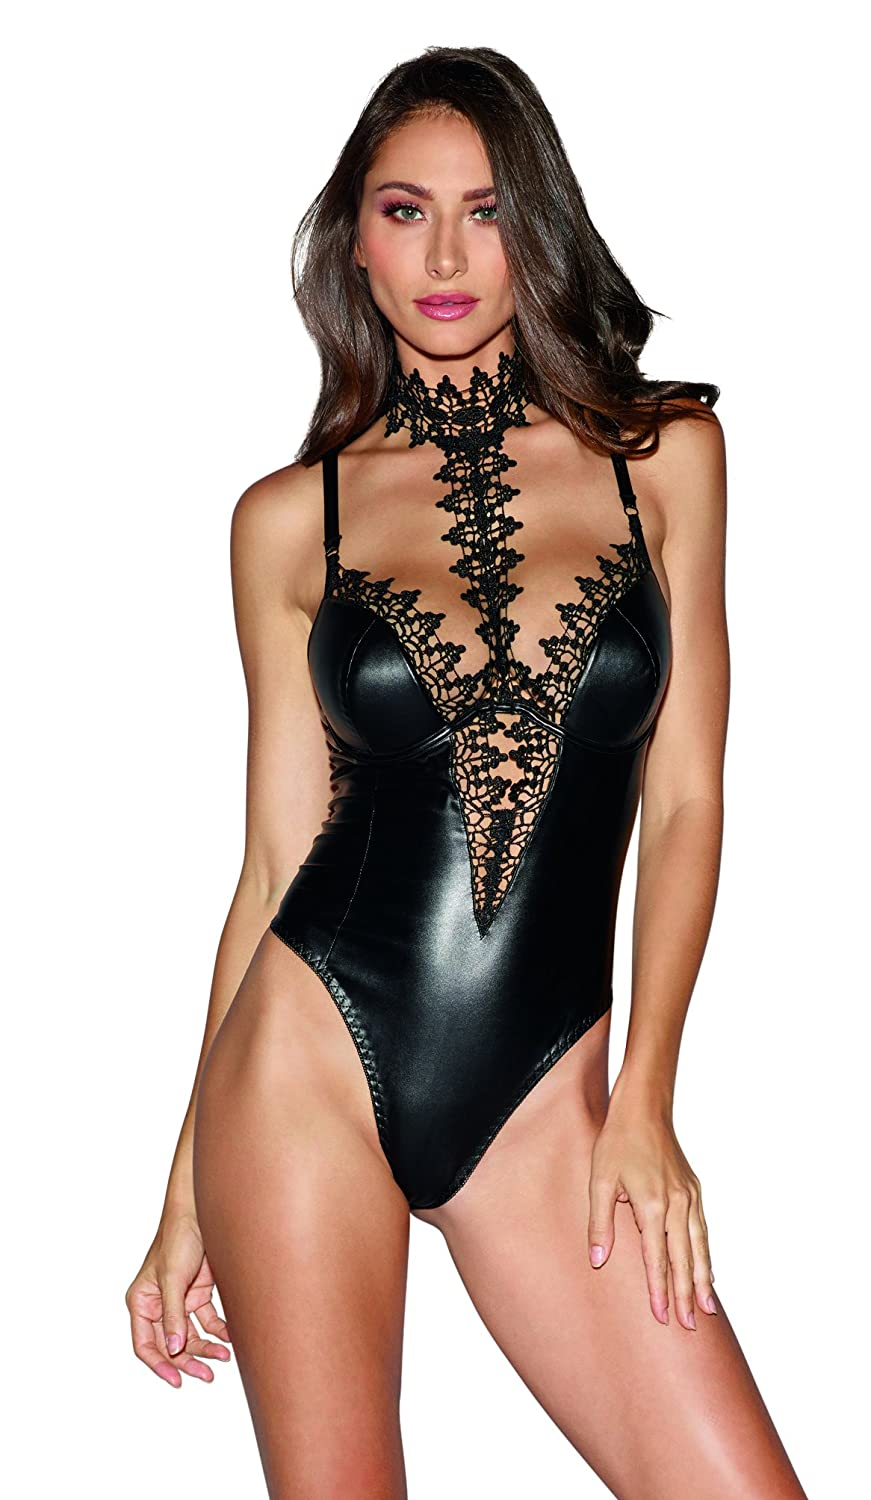 Dreamgirl Women's Faux-Leather Teddy Bodysuit with Ornate Lace Choker 10985-BLK-$P